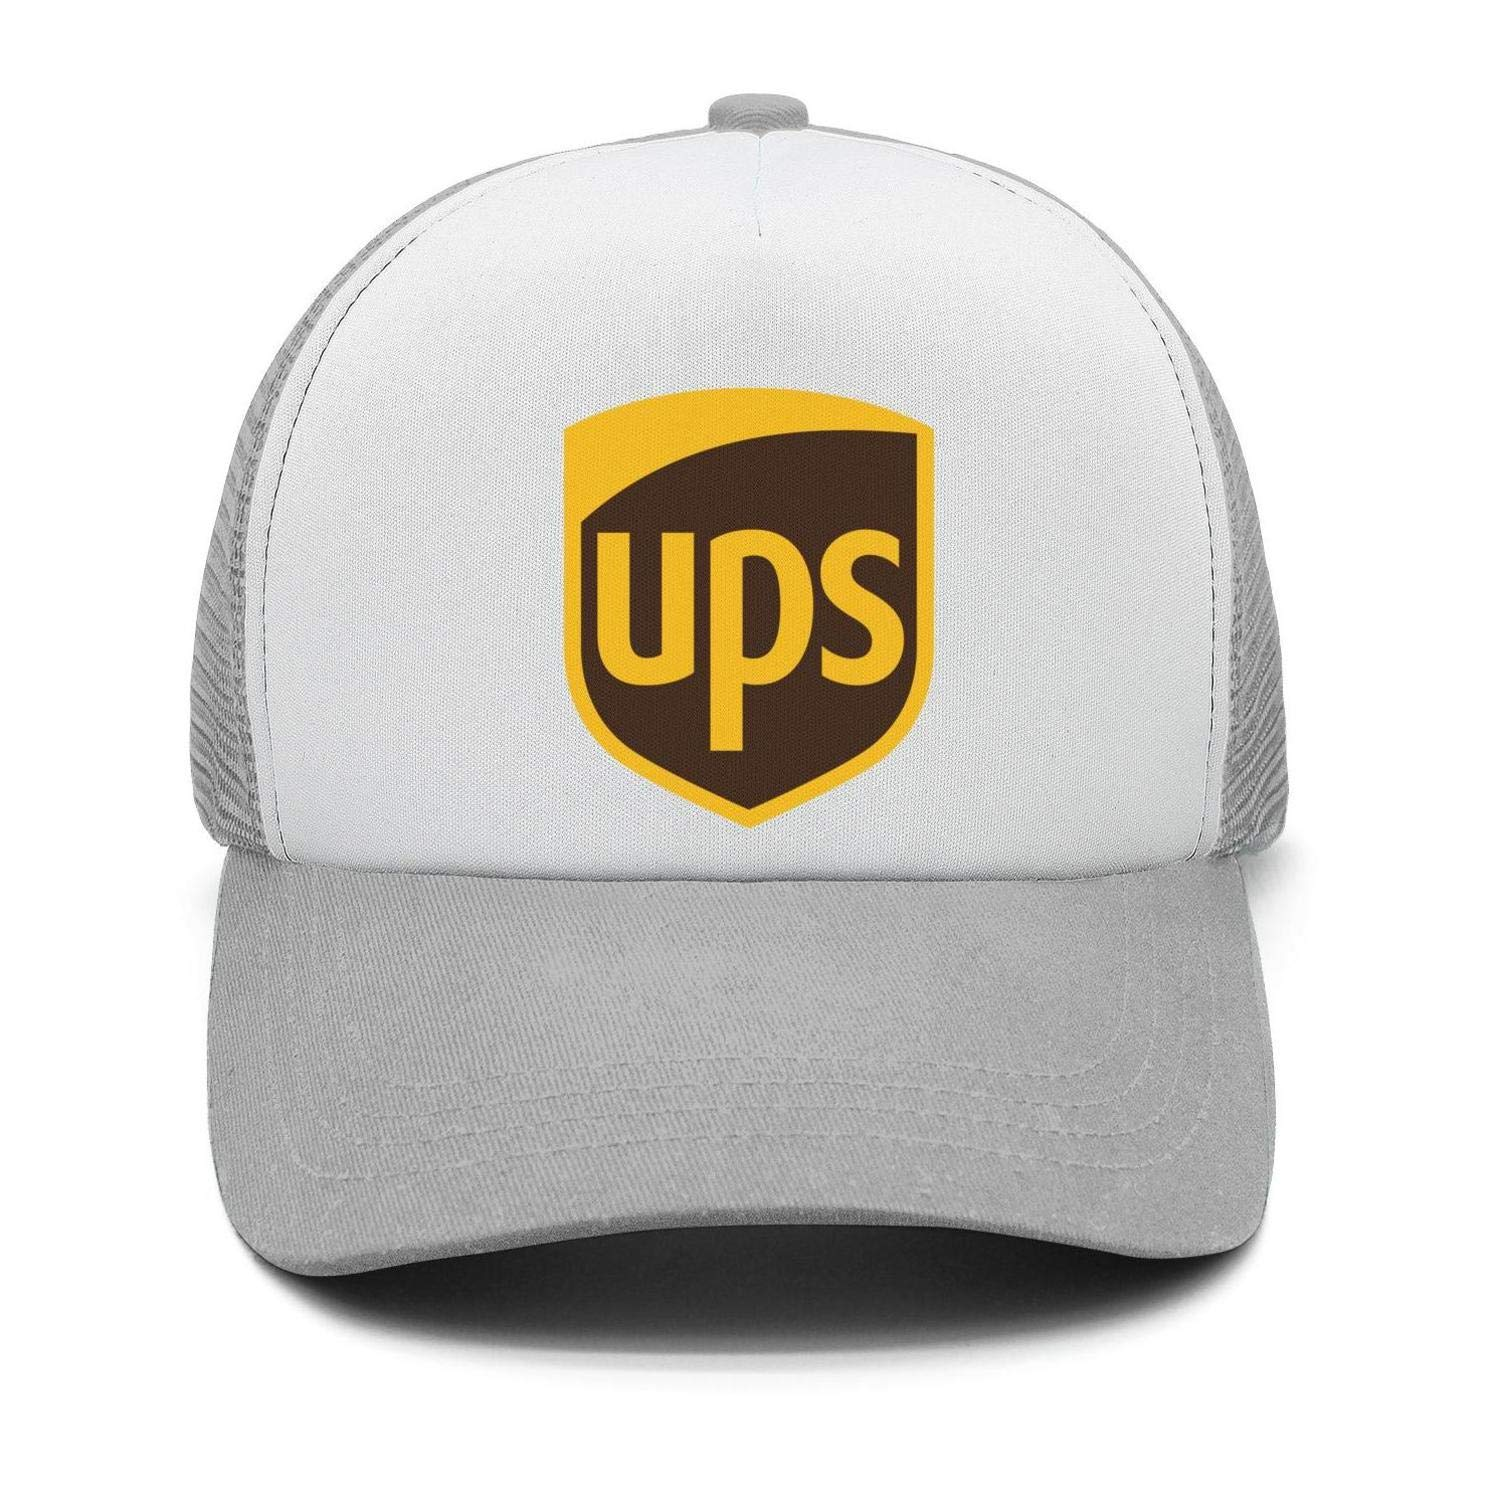 Adjustable Sun Cap Mens Classic Trucker Hat United-Parcel-Service-UPS-Logo